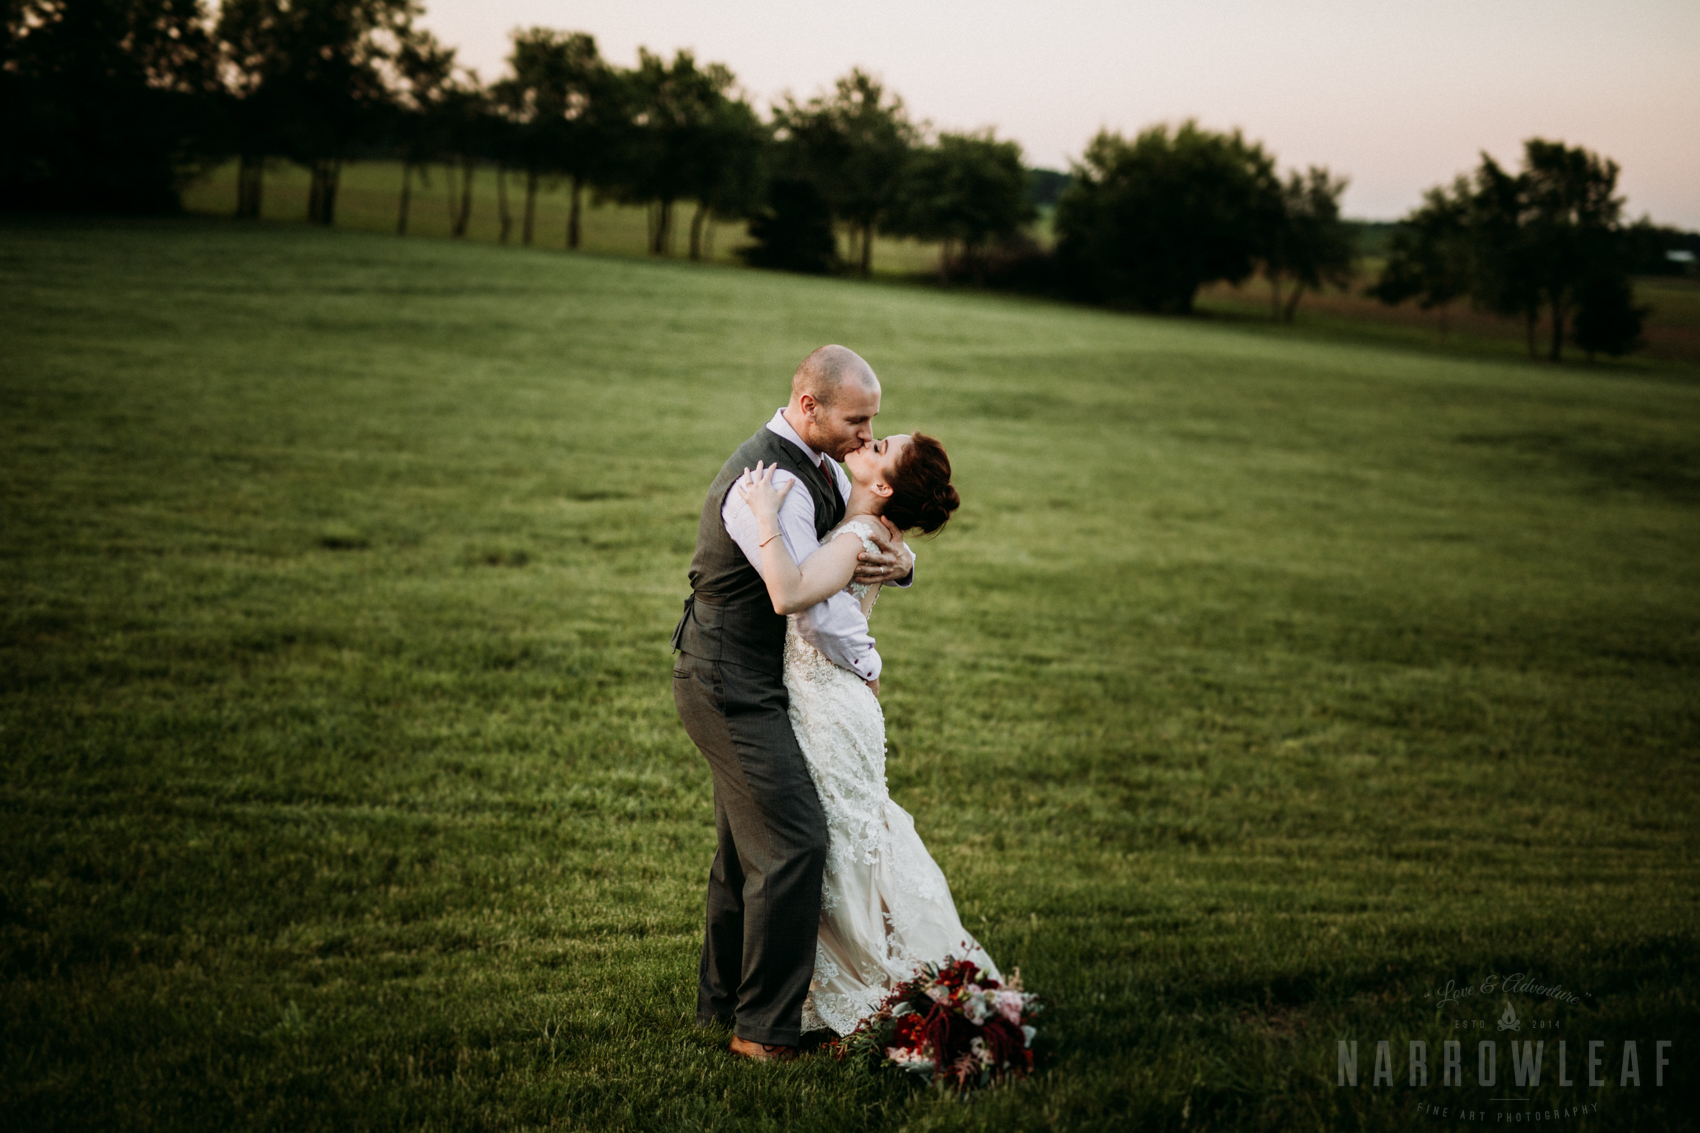 bride-groom-romantic-sunset-photos-rustys-hitching-post-event-center-new-richmond-wi-56.jpg